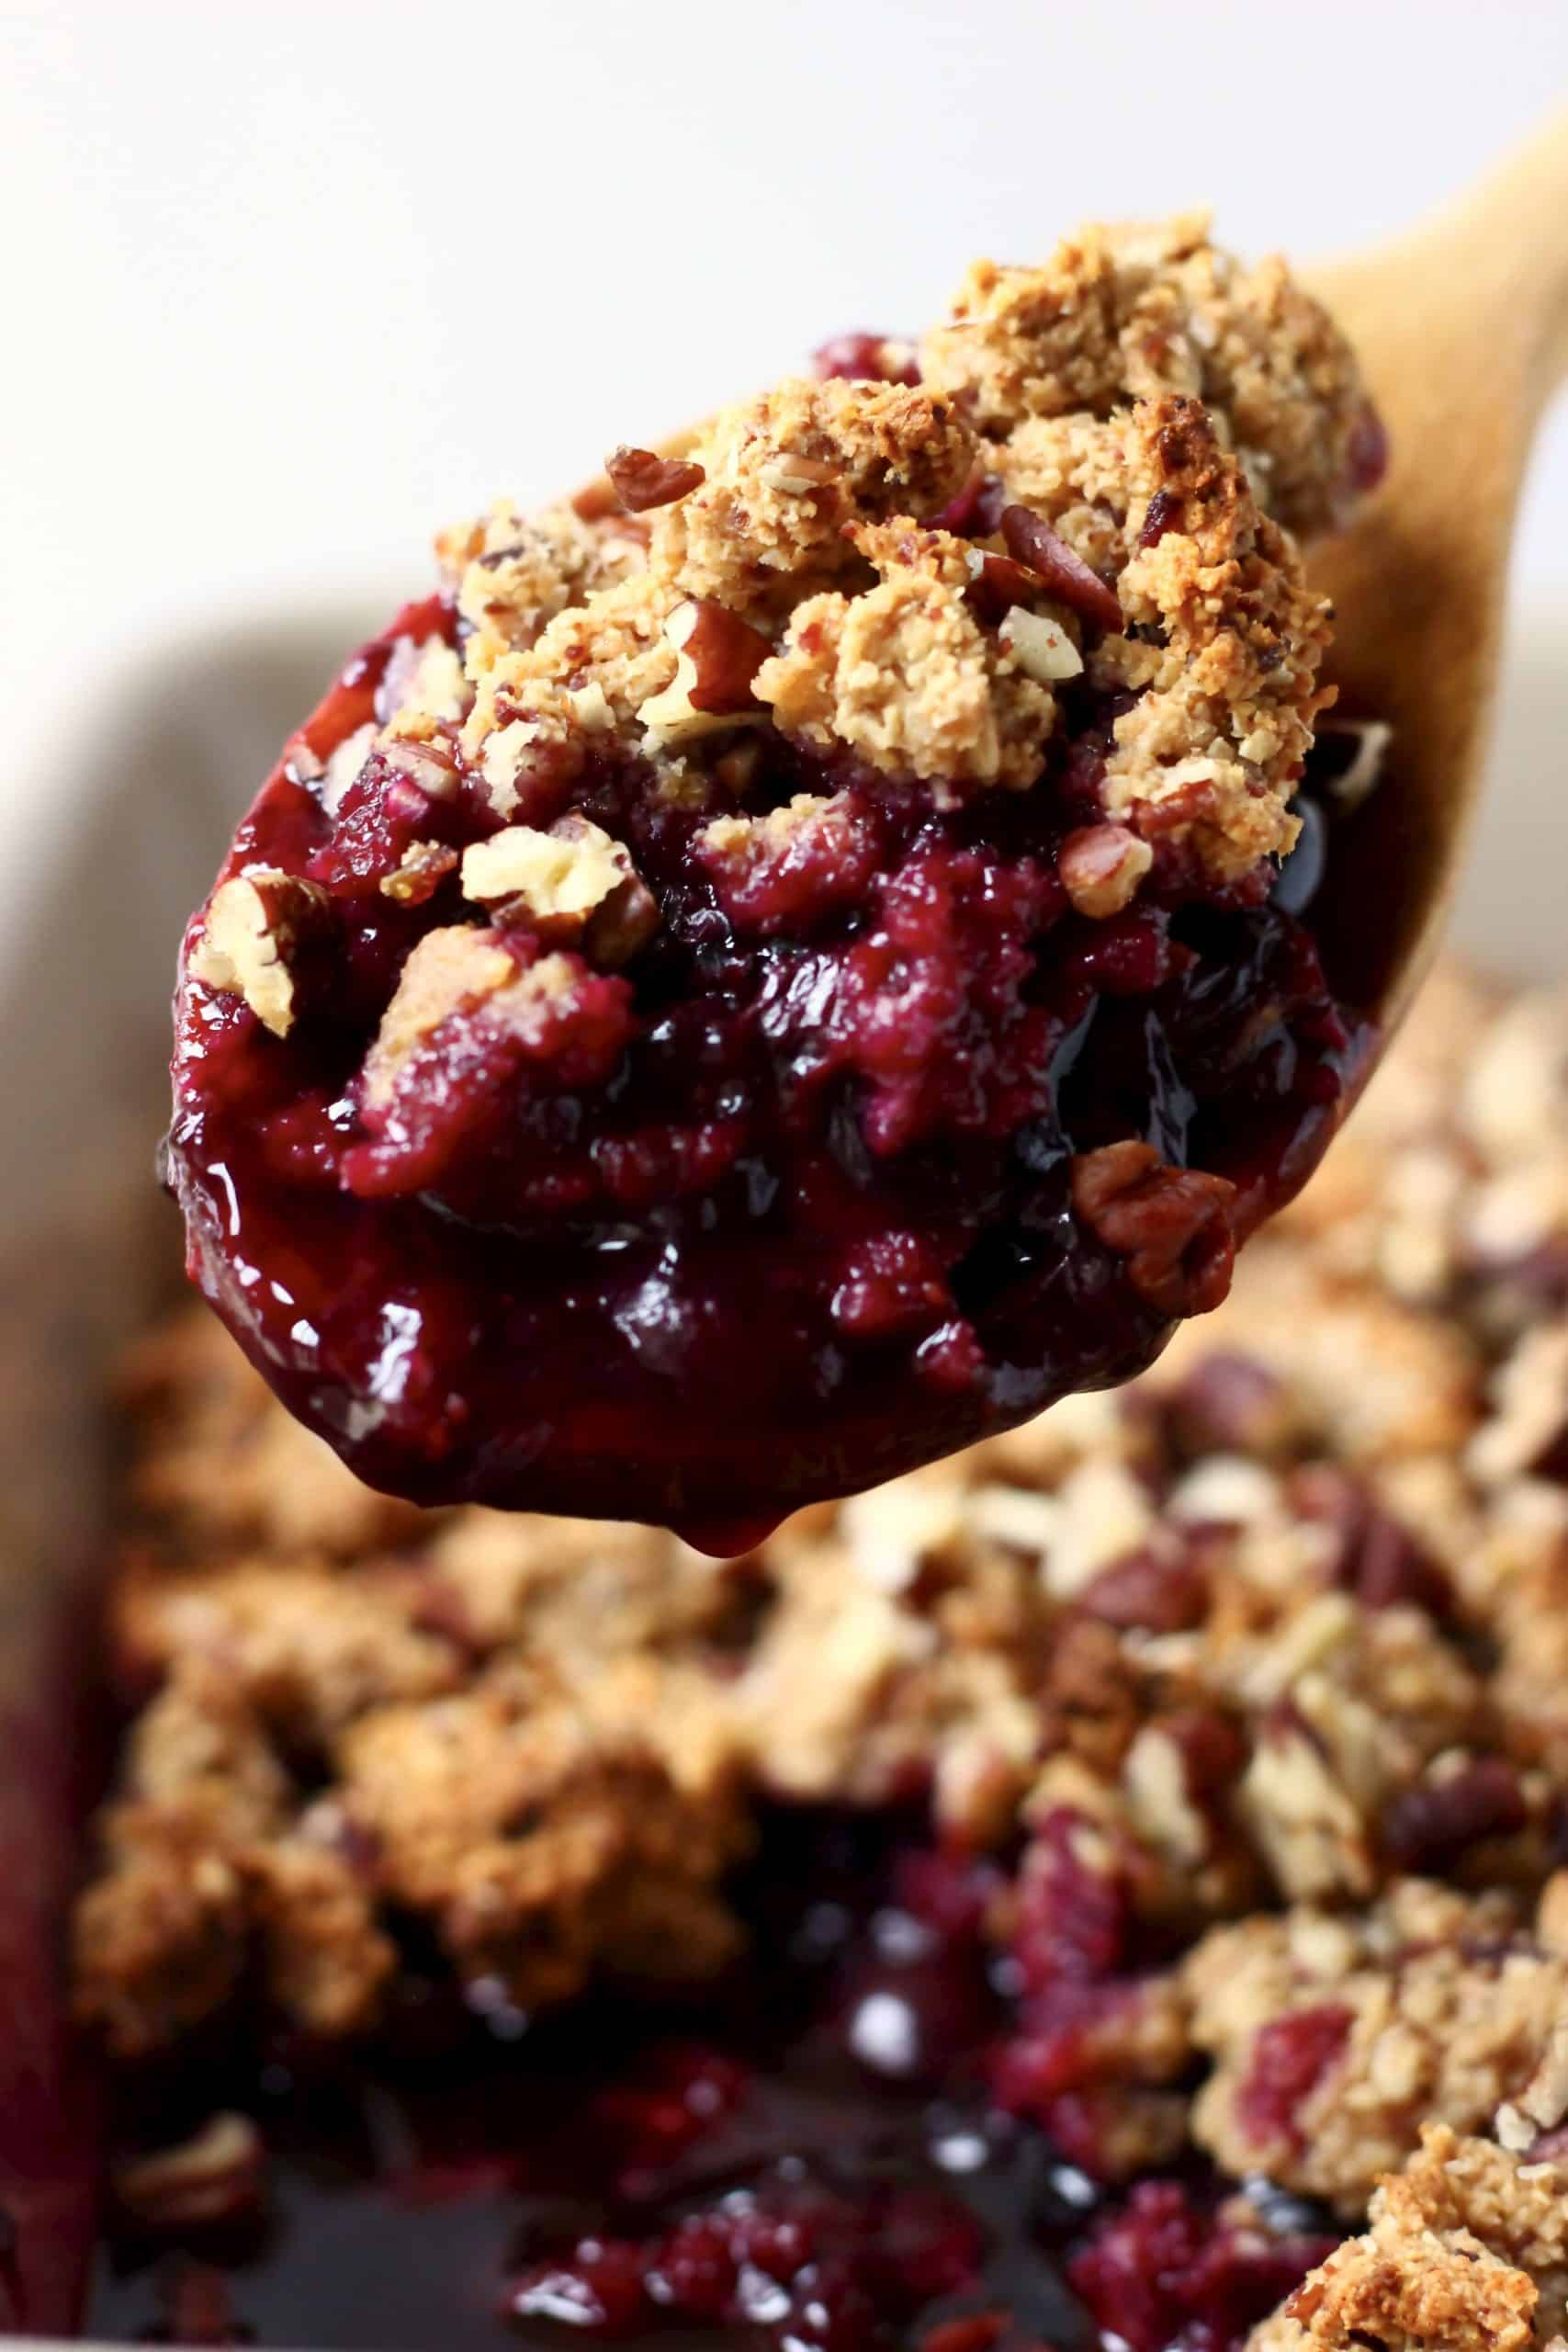 Blueberry crisp in a baking dish with a wooden spoon lifting up a mouthful